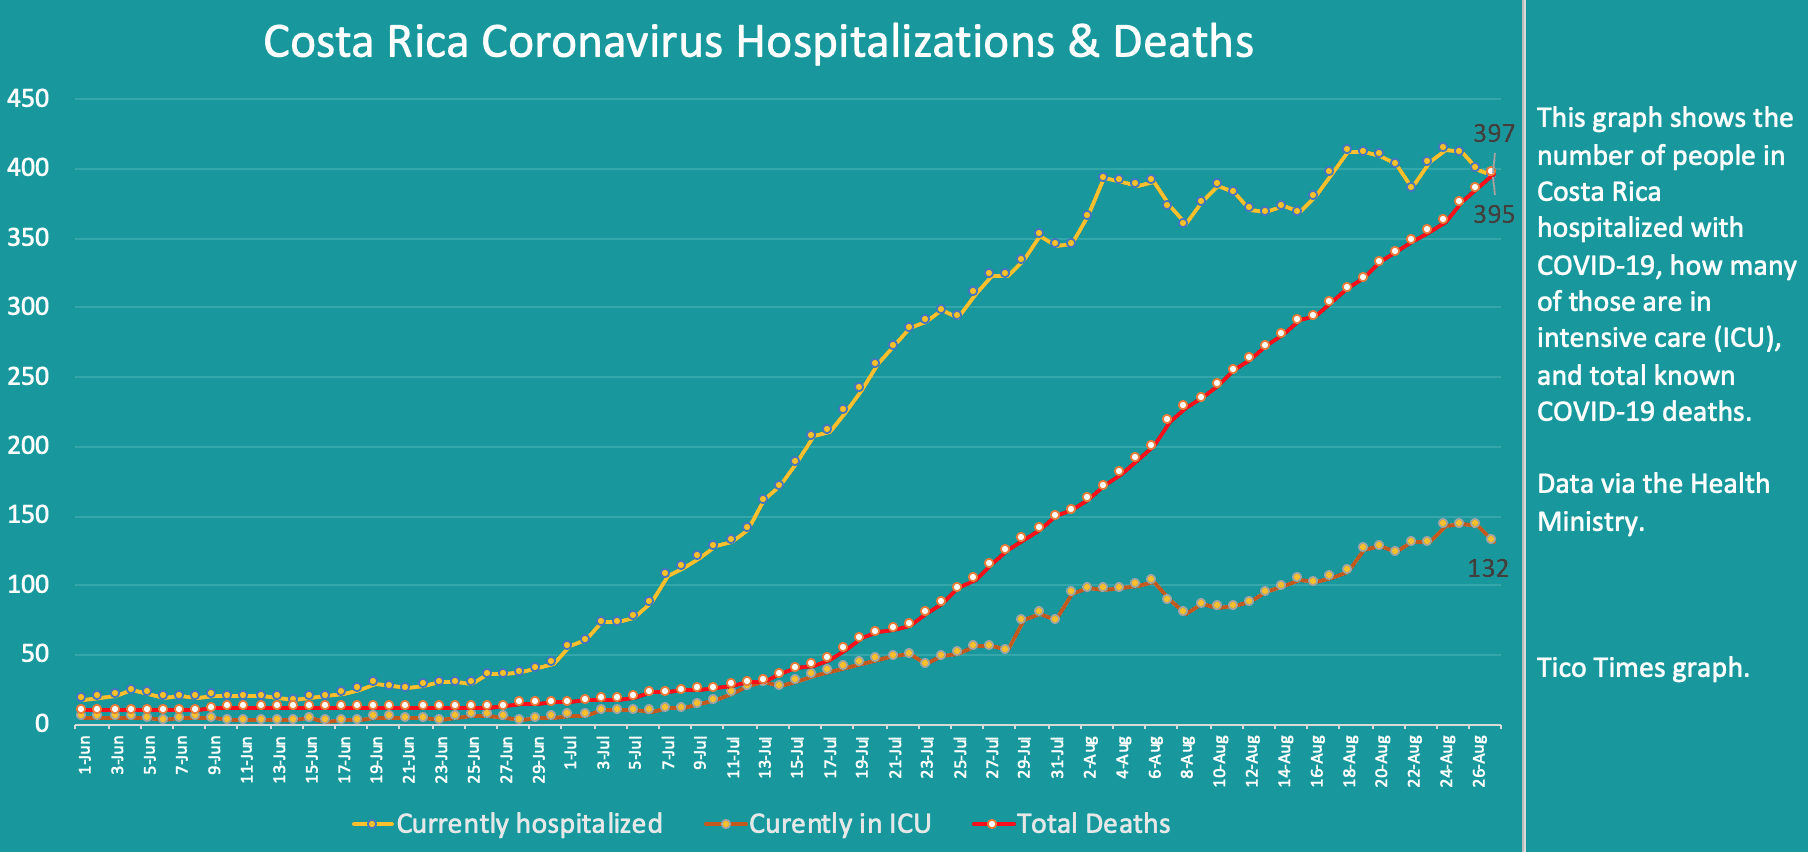 Costa Rica coronavirus hospitalizations and deaths on August 27, 2020